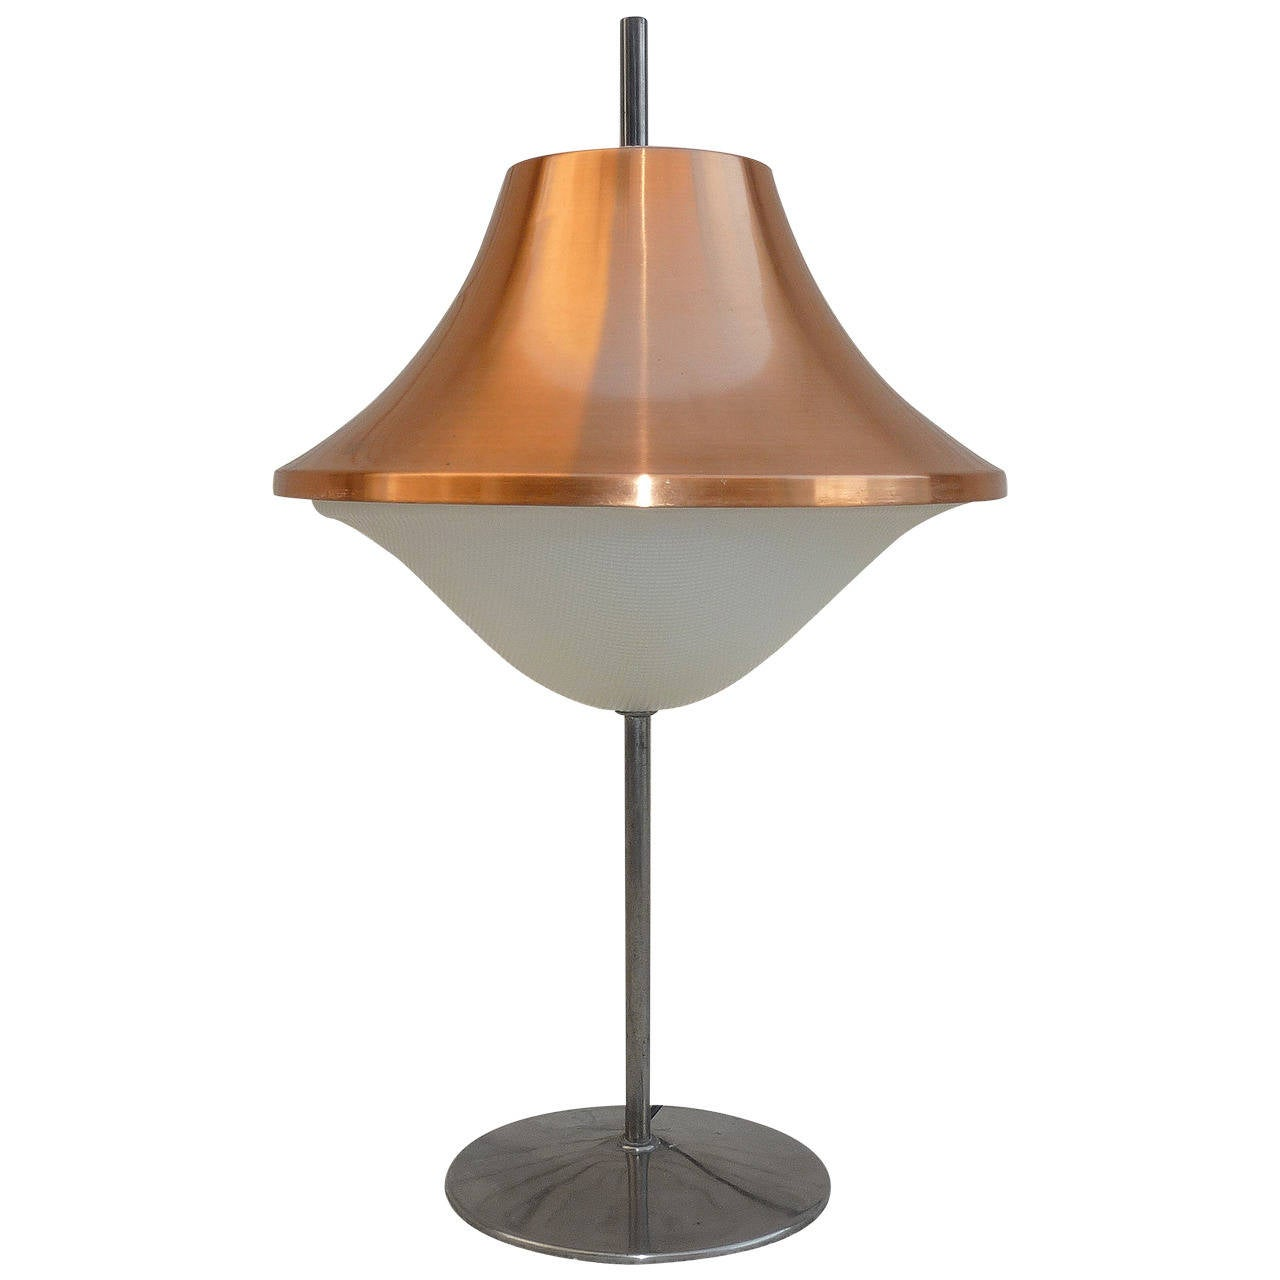 Italian Table Lamp after Stilnovo 1